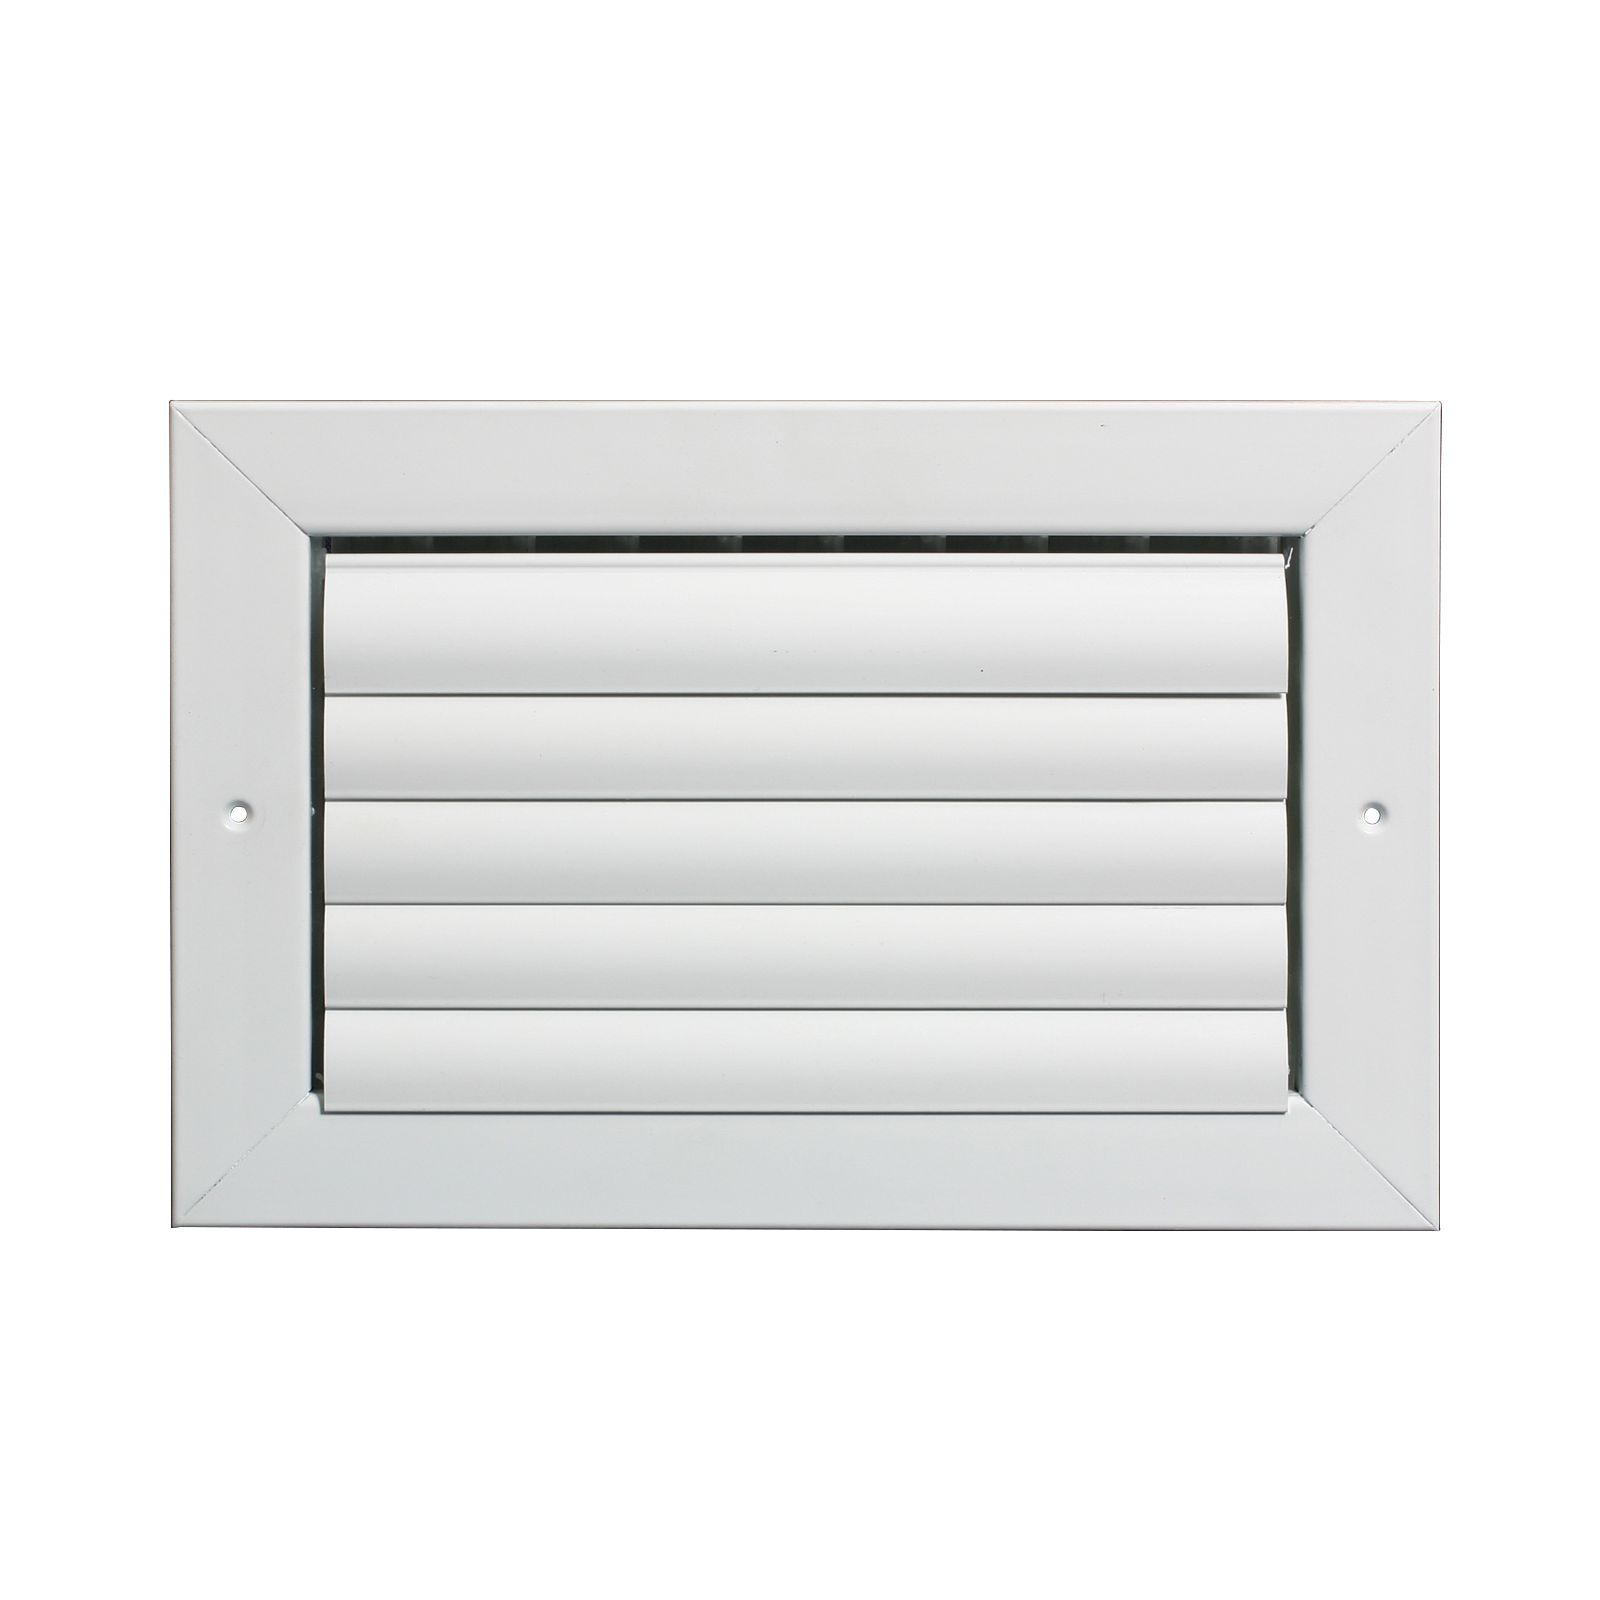 "Grille Tech CL1M1206 - Aluminum Ceiling 1-Way Deflection Supply, Multi-shutter 12"" X 6"" White"